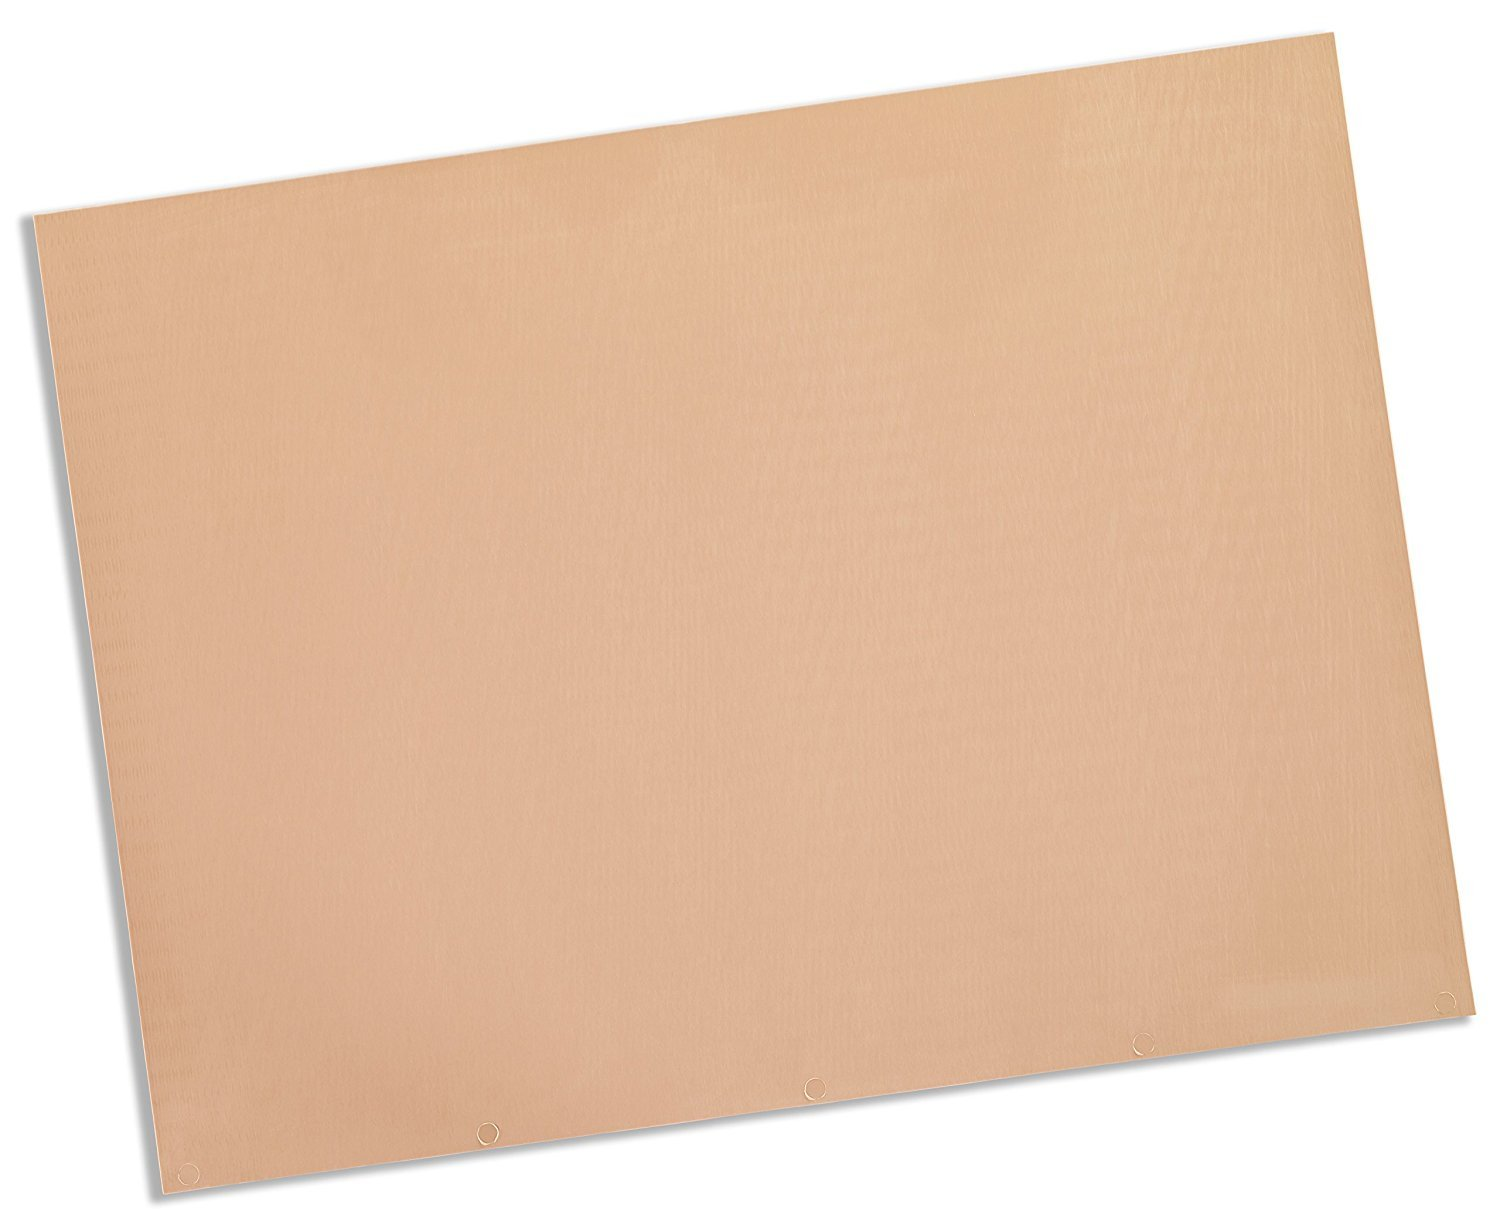 Rolyan Splinting Material Sheet, Polyflex II, Beige, 1/8'' x 6'' x 12'', Solid, Single Sheet